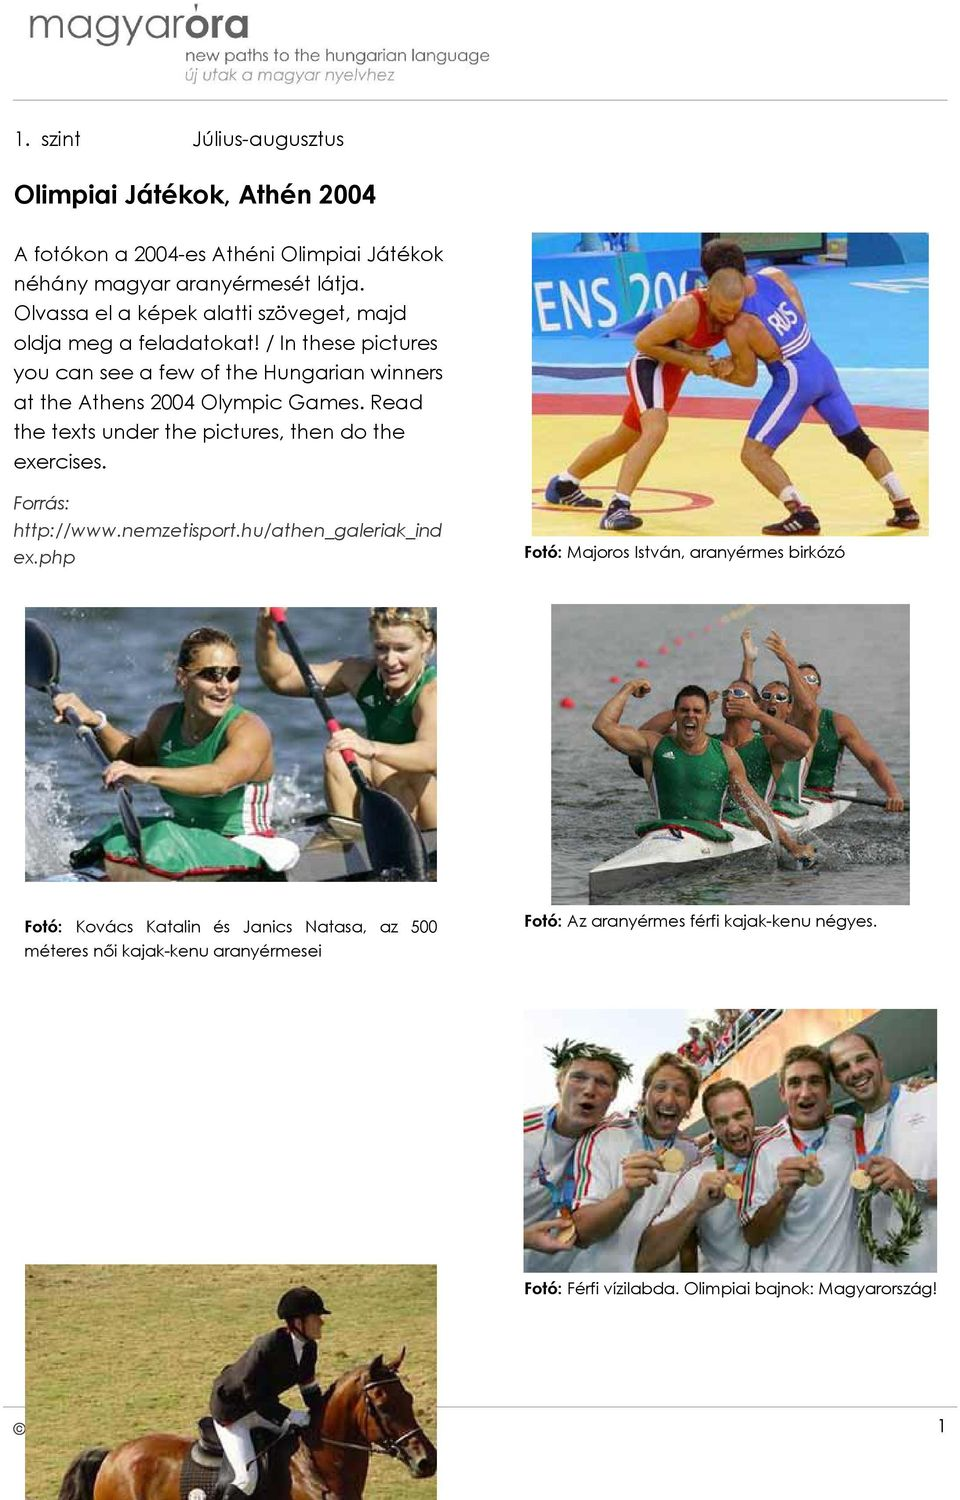 / In these pictures you can see a few of the Hungarian winners at the Athens 2004 Olympic Games.